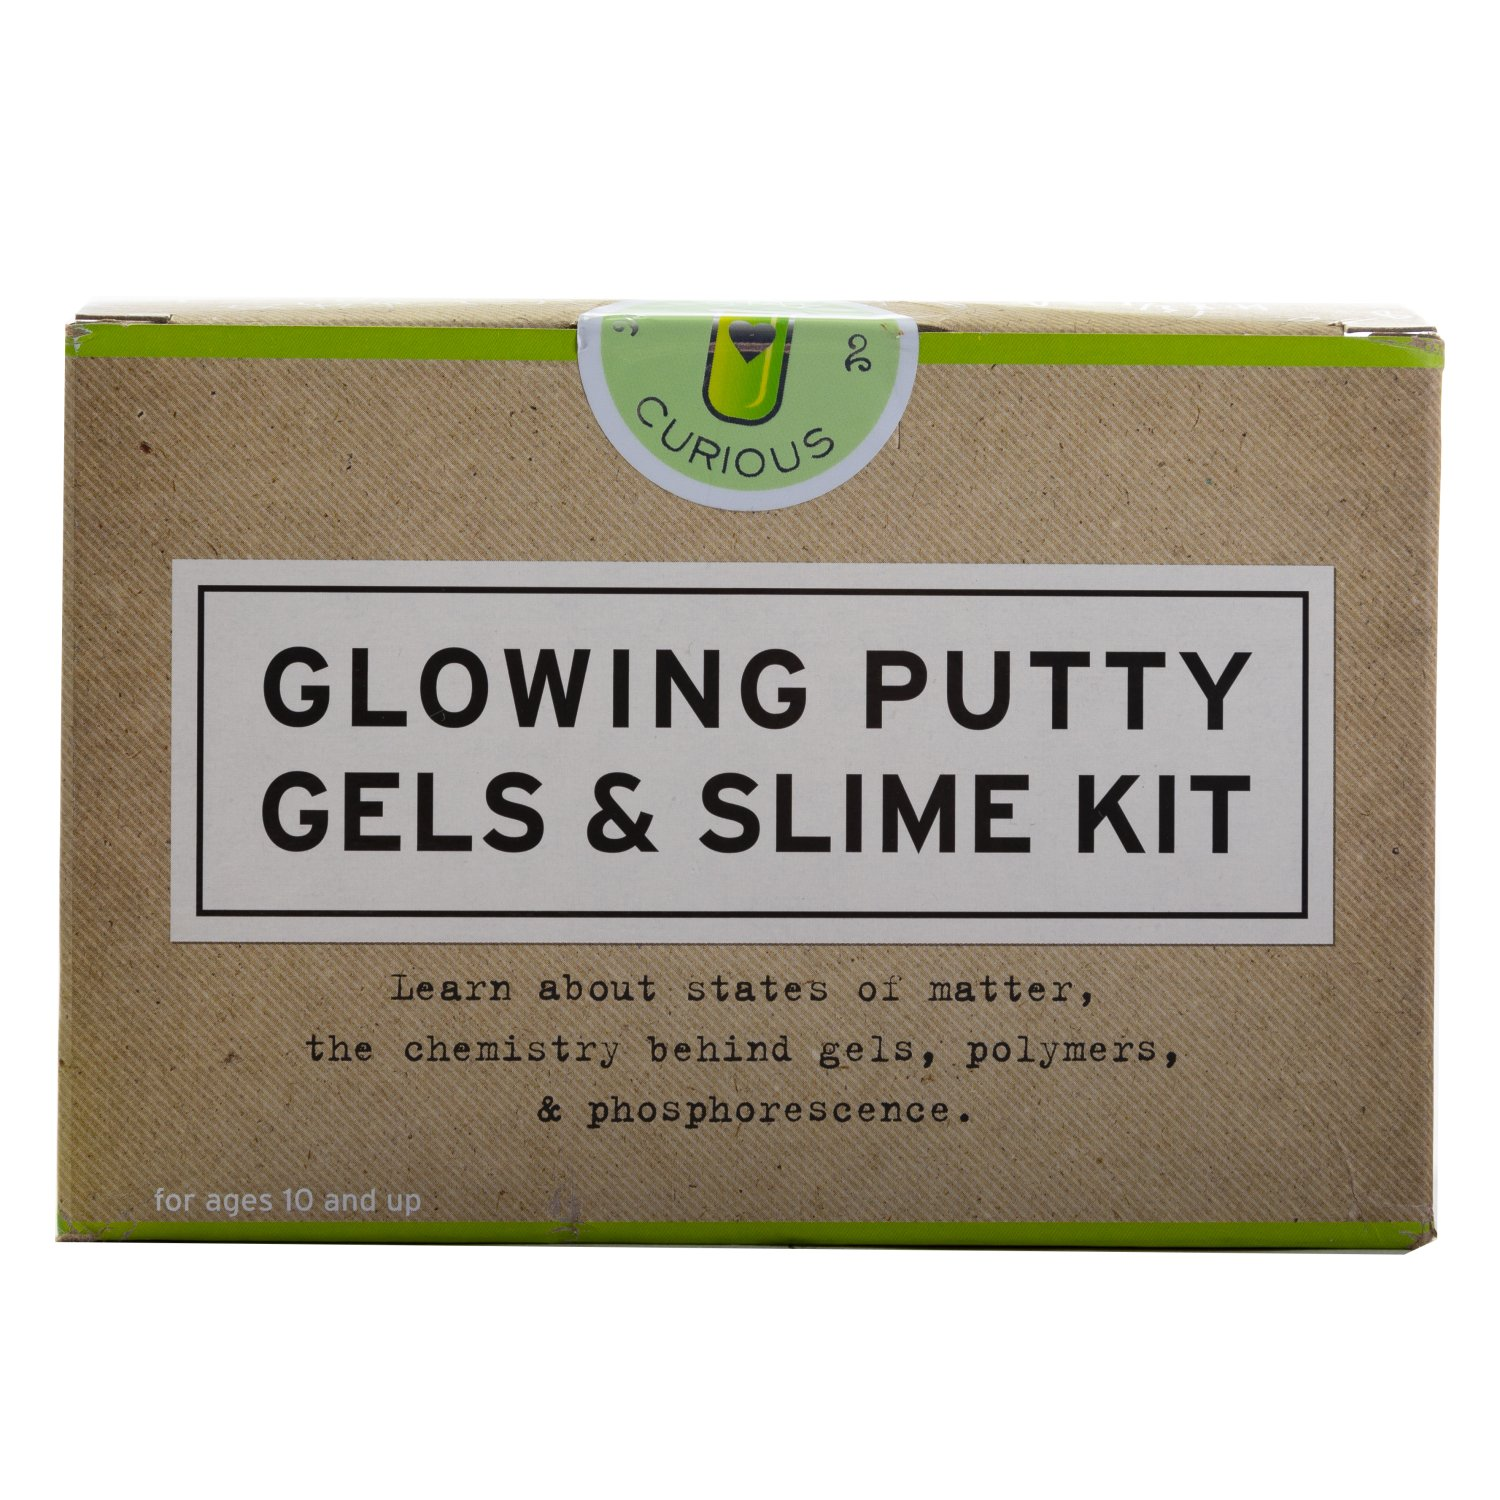 Glowing Putty Gels and Slime Kit Chemistry Set - Tan